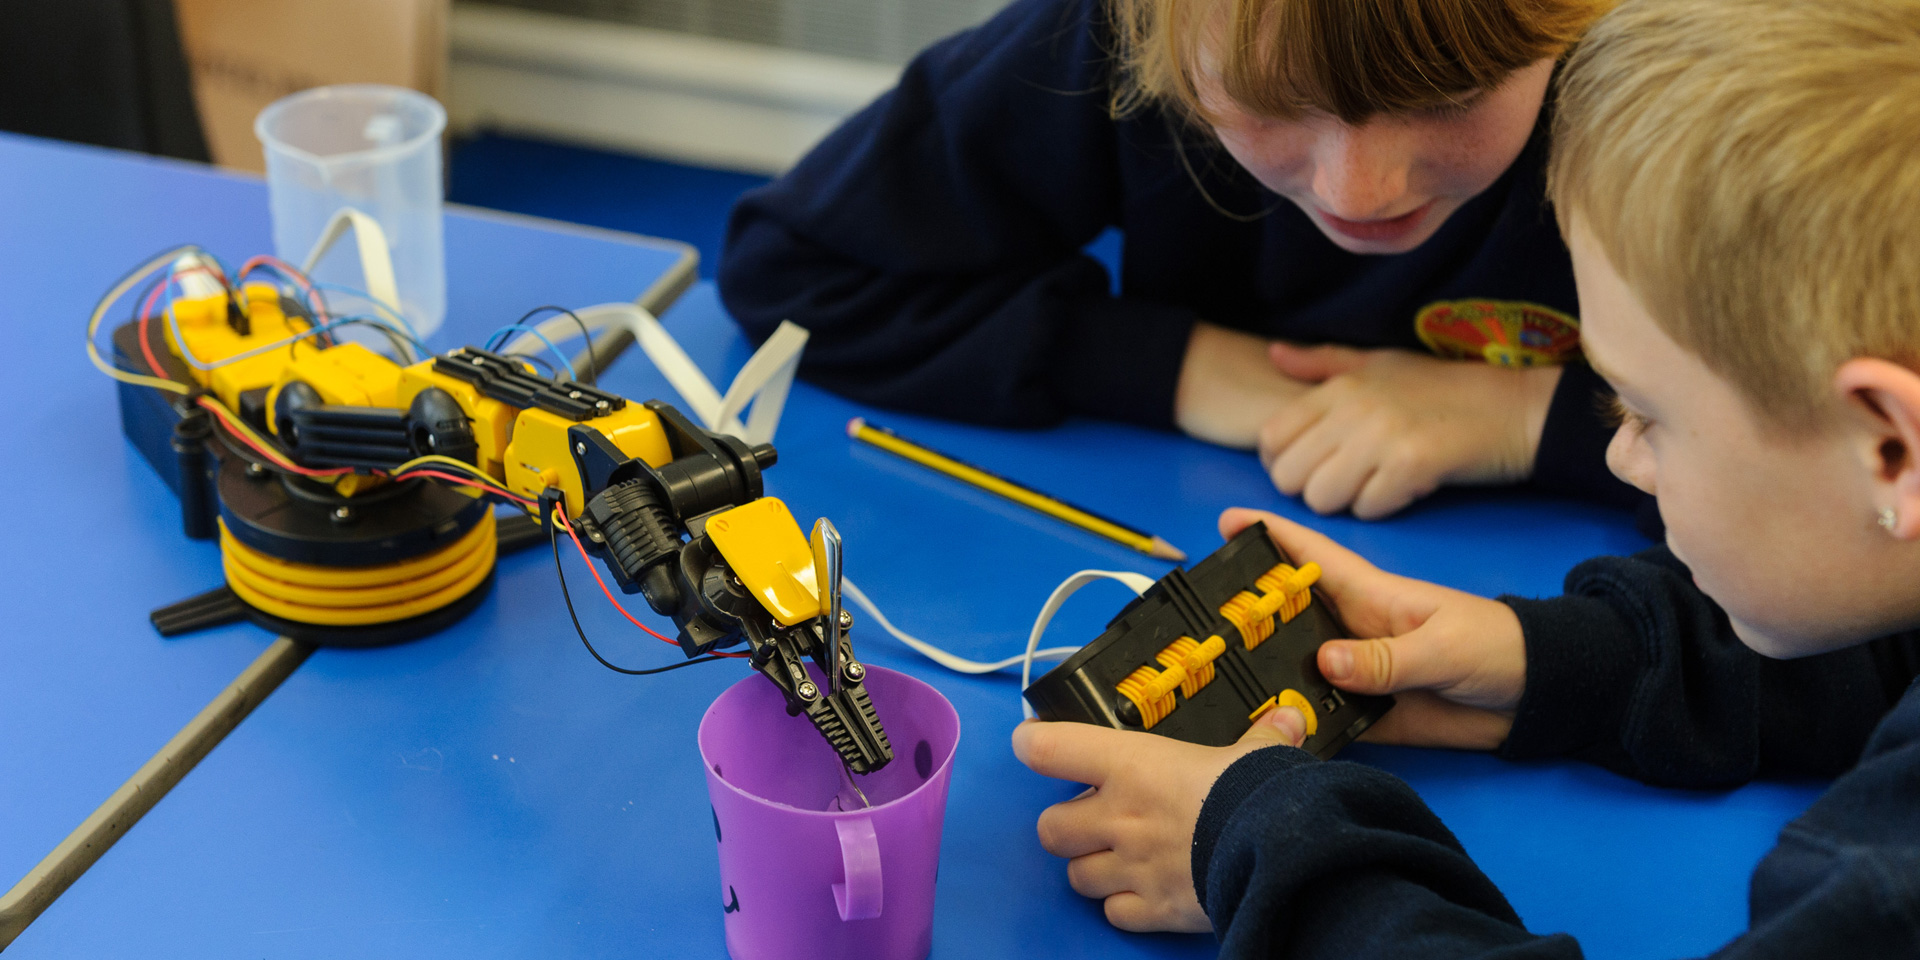 Students operate a robotic arm